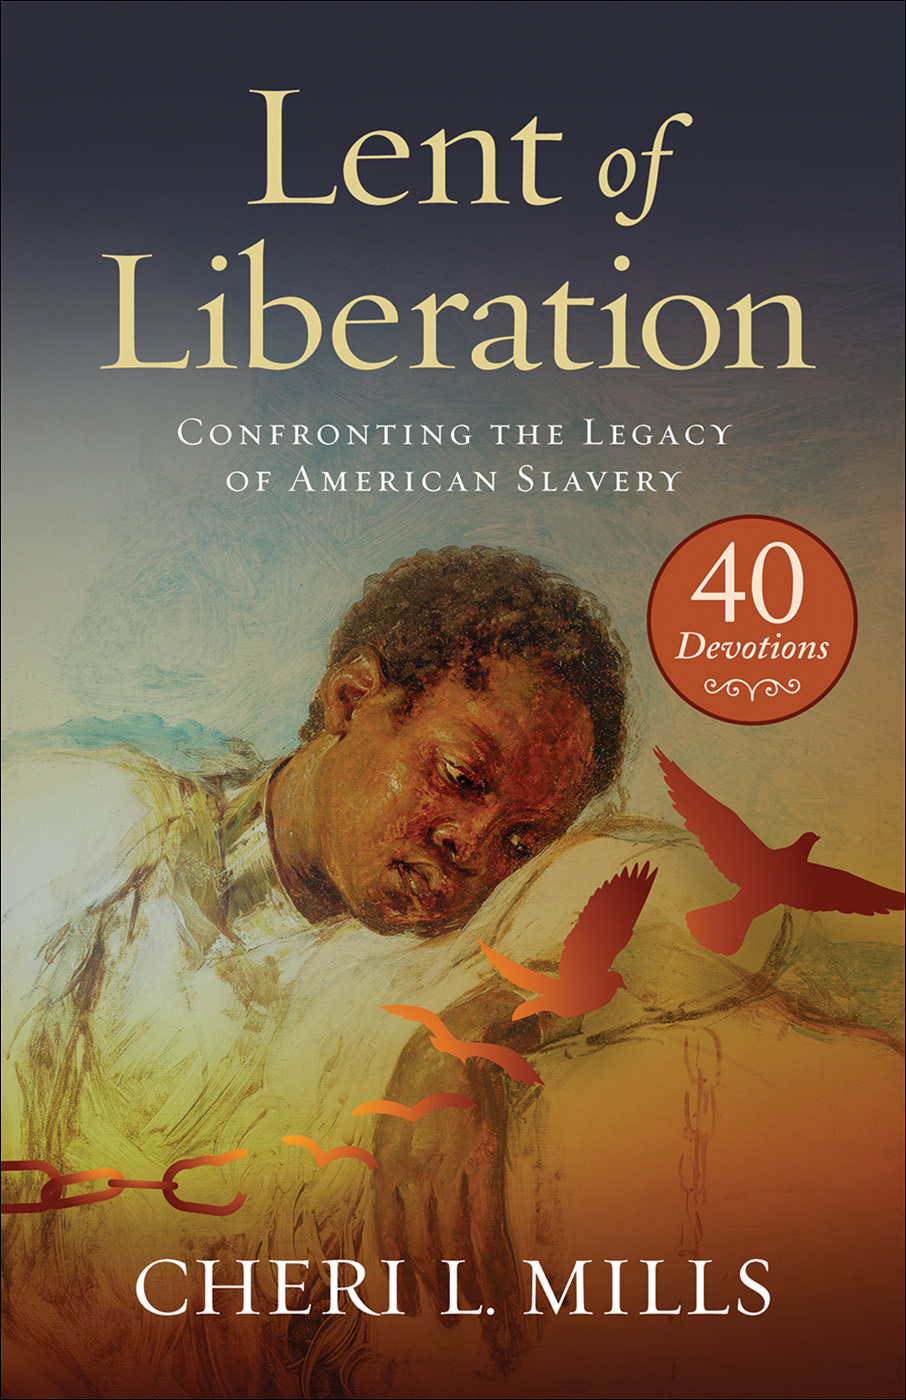 Lent of Liberation